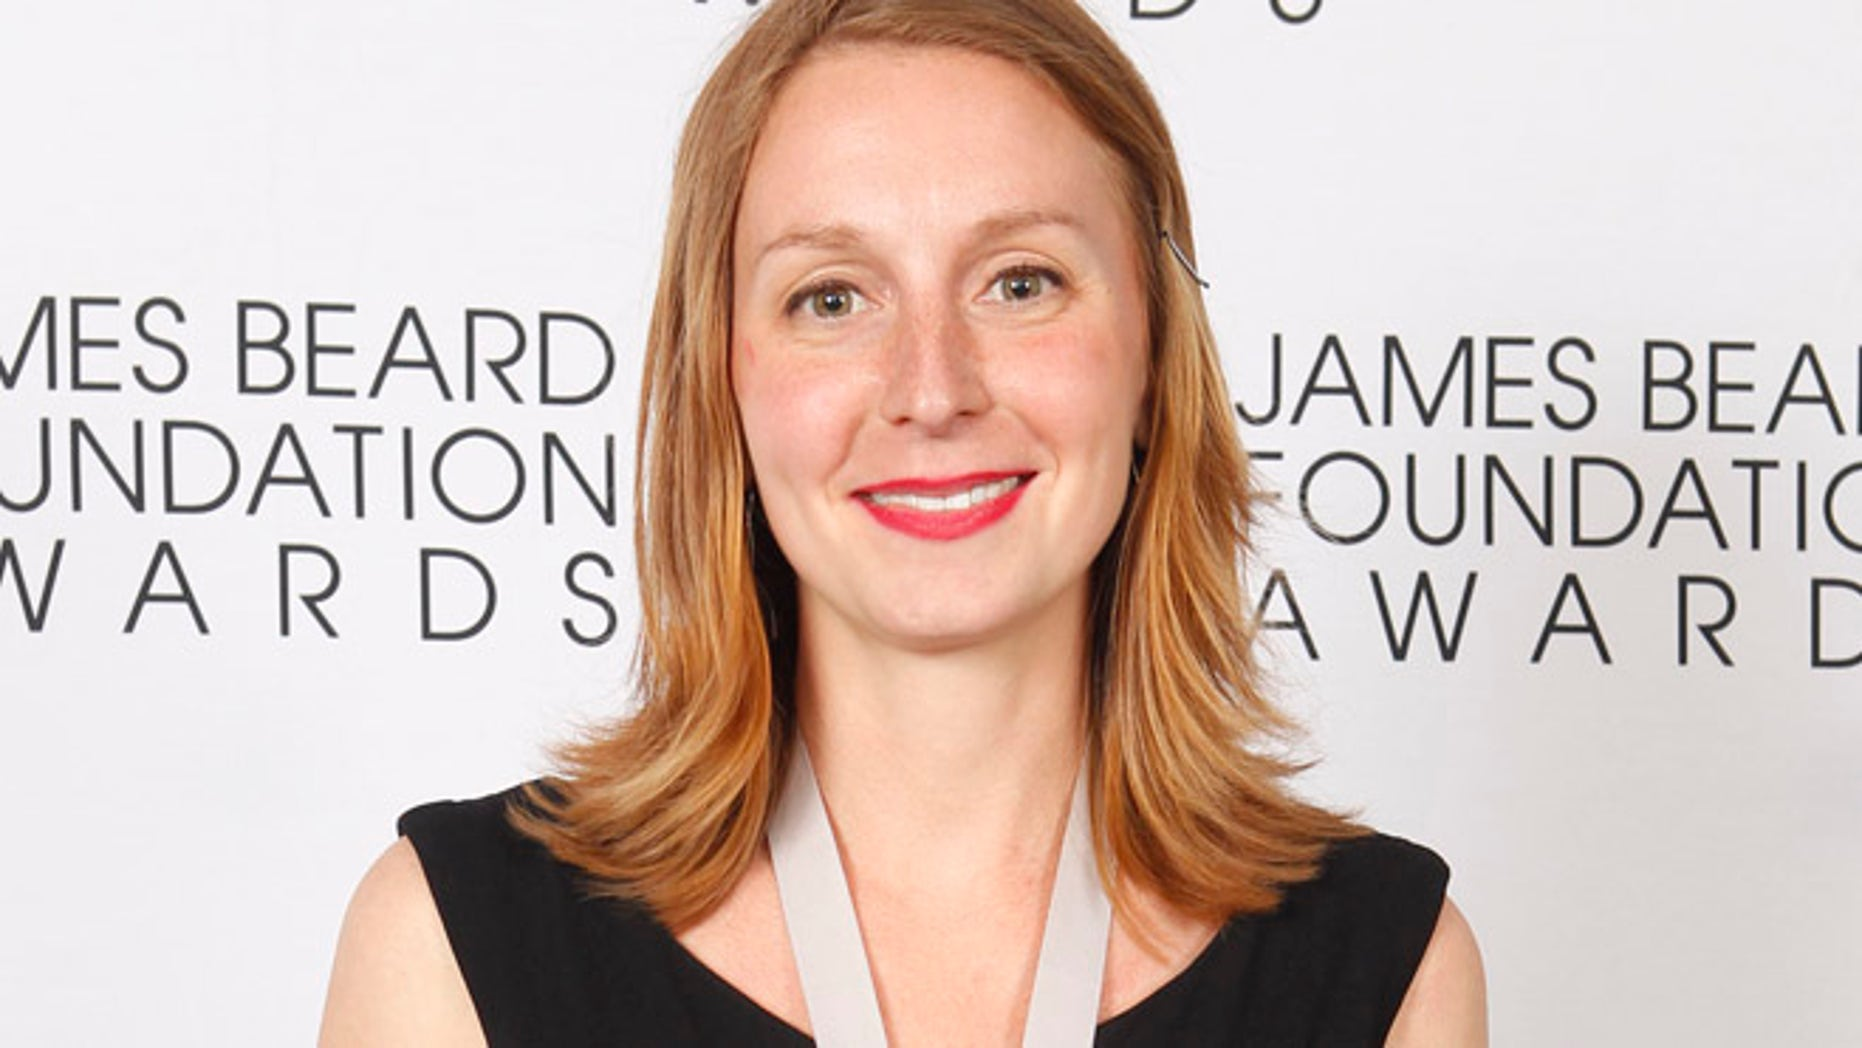 May 7, 2012: Christina Tosi, of Momofuku Milk Bar in New York, poses with her Rising Star Chef of the Year medal during the James Beard Foundation Awards in New York.